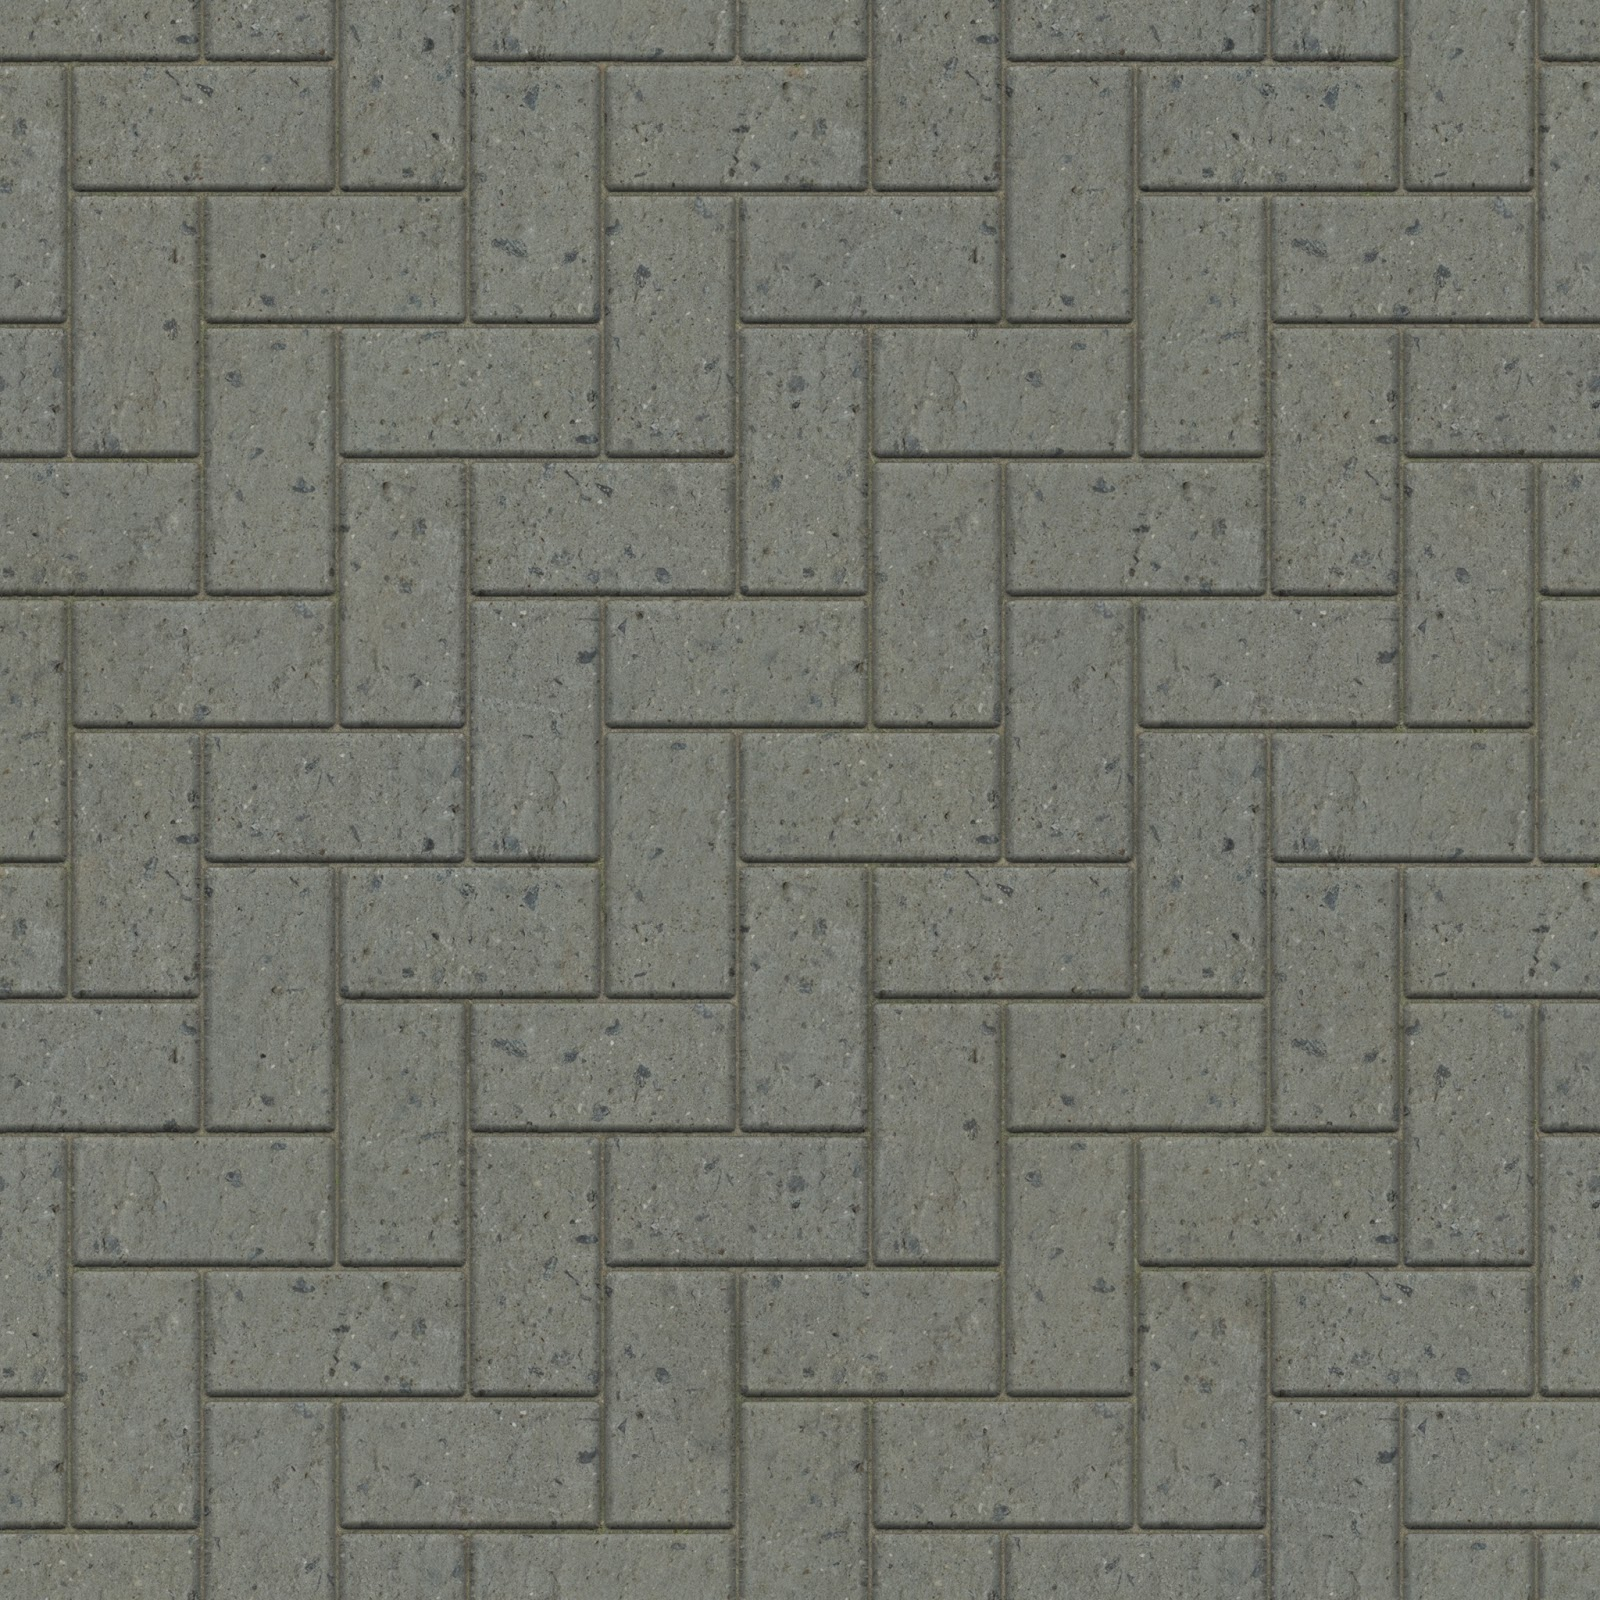 Brick tiles pavement seamless texture 2048x2048